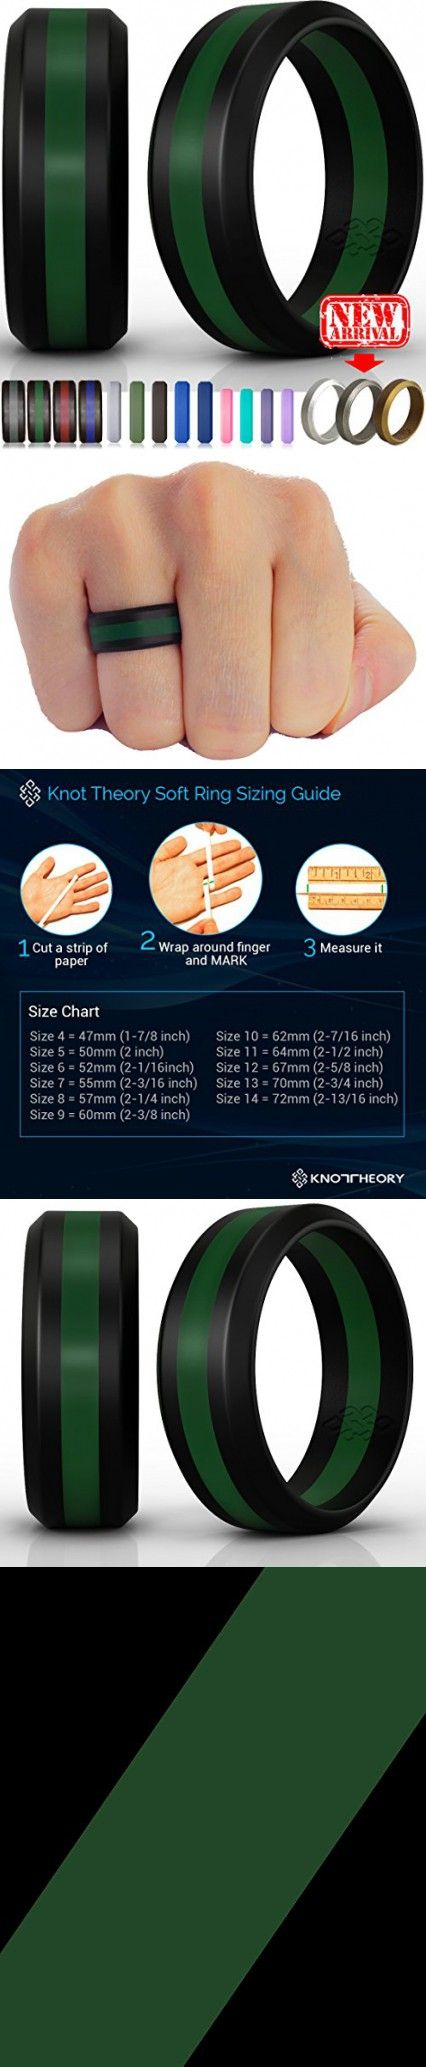 Silicone Wedding Ring Band For Men Women Enhanced Comfort Superior Non Bulky Rubber Rings Flexible No Metal Safe For Firefighter Athletic Husband Wife S Wedding Vows To Husband Silicone